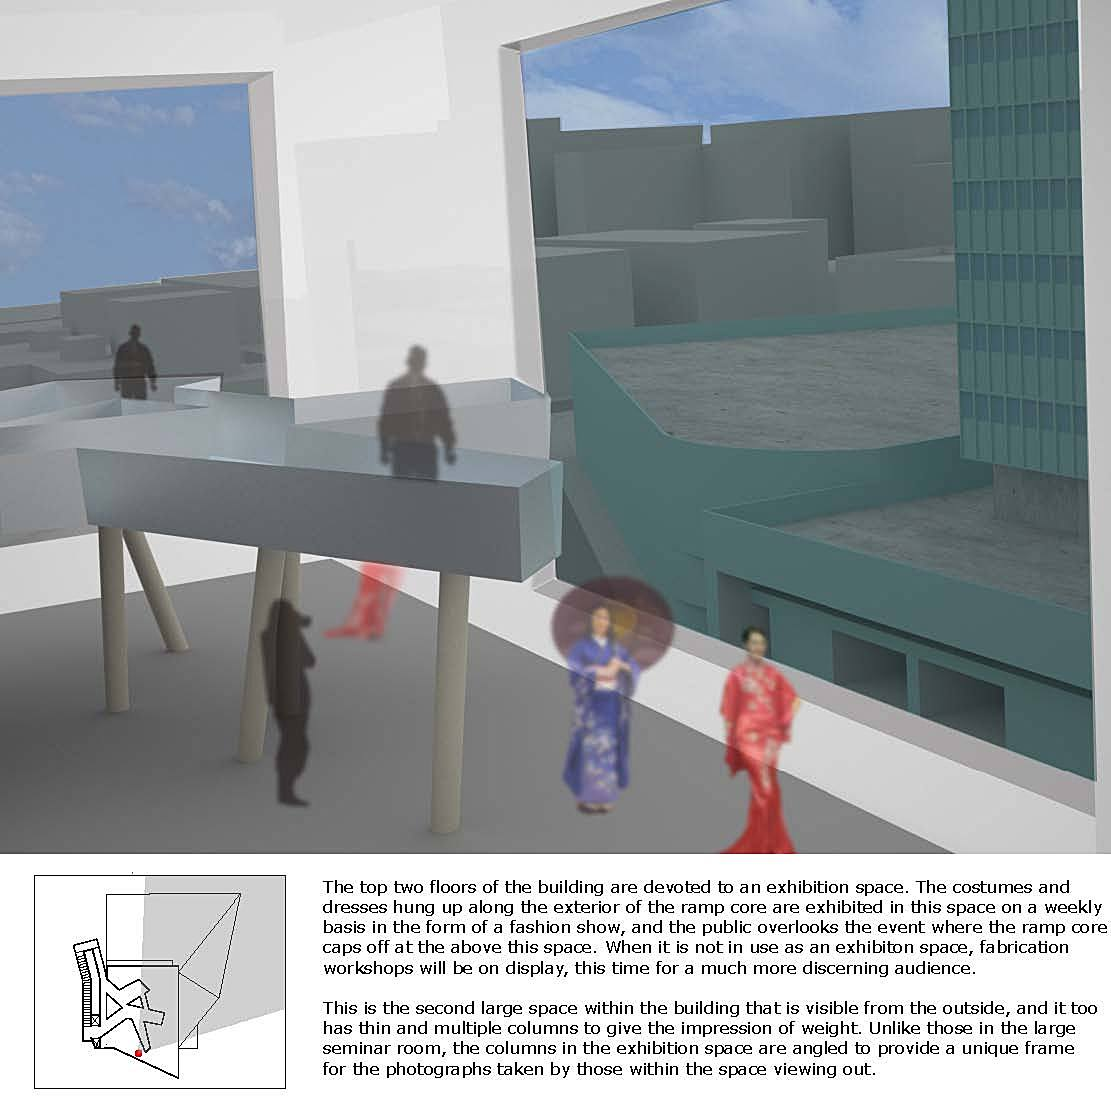 Exhibition and Catwalk Space, top two floors